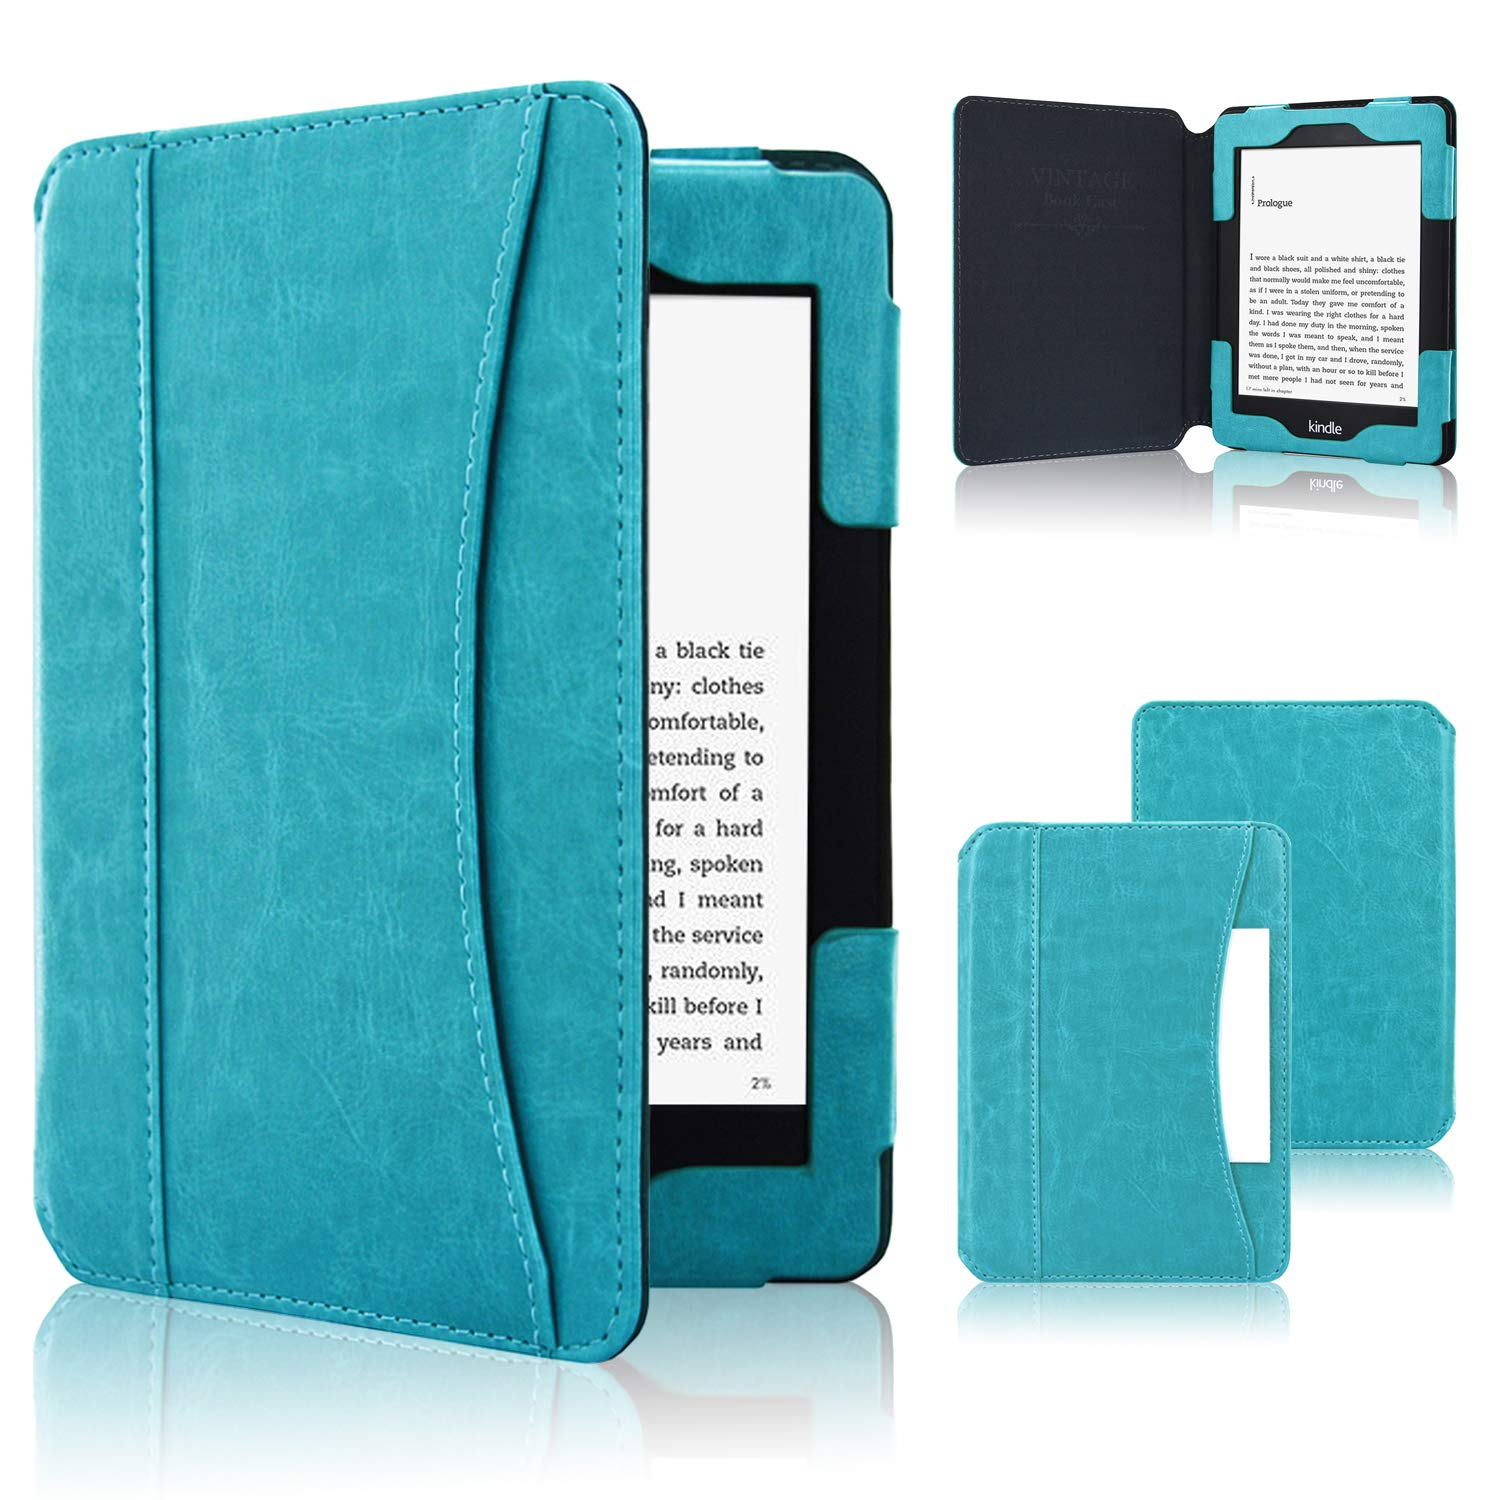 Kindle Paperwhite Case 2018, ACcolor Folio Smart Cover Leather Case with Auto Sleep Wake Feature for All and Old Kindle Paperwhite Models, Sky Blue